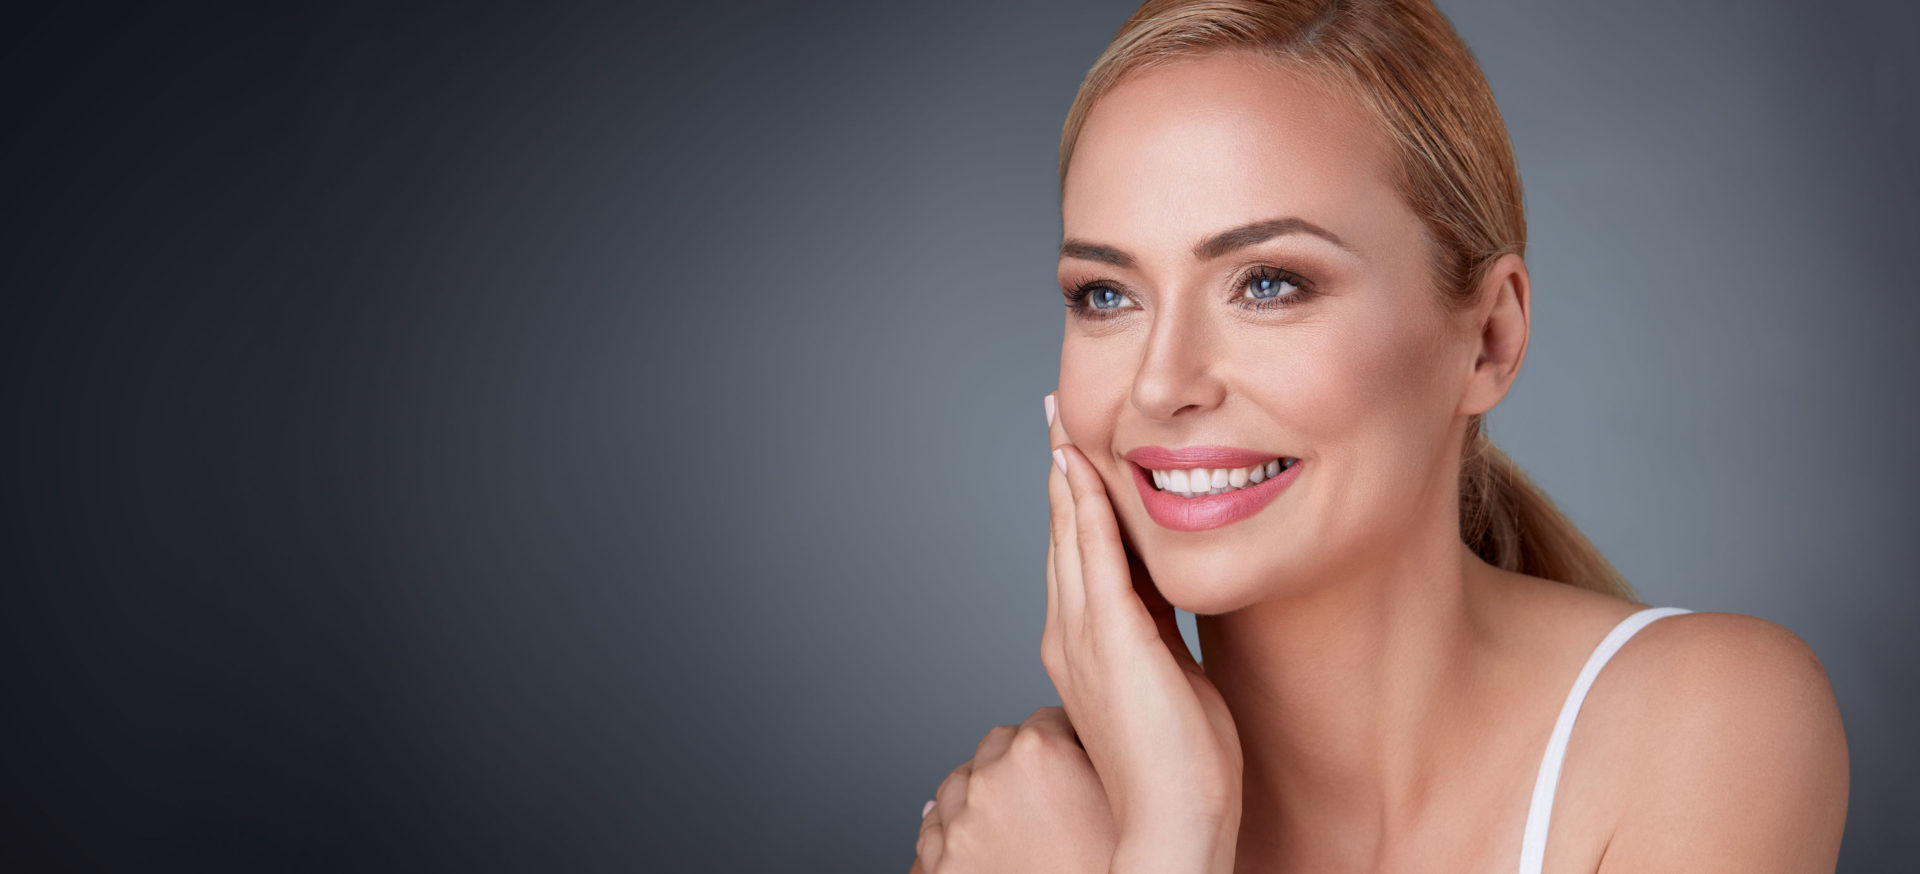 Microdermabrasion Didcot & Wantage Beauty Salons